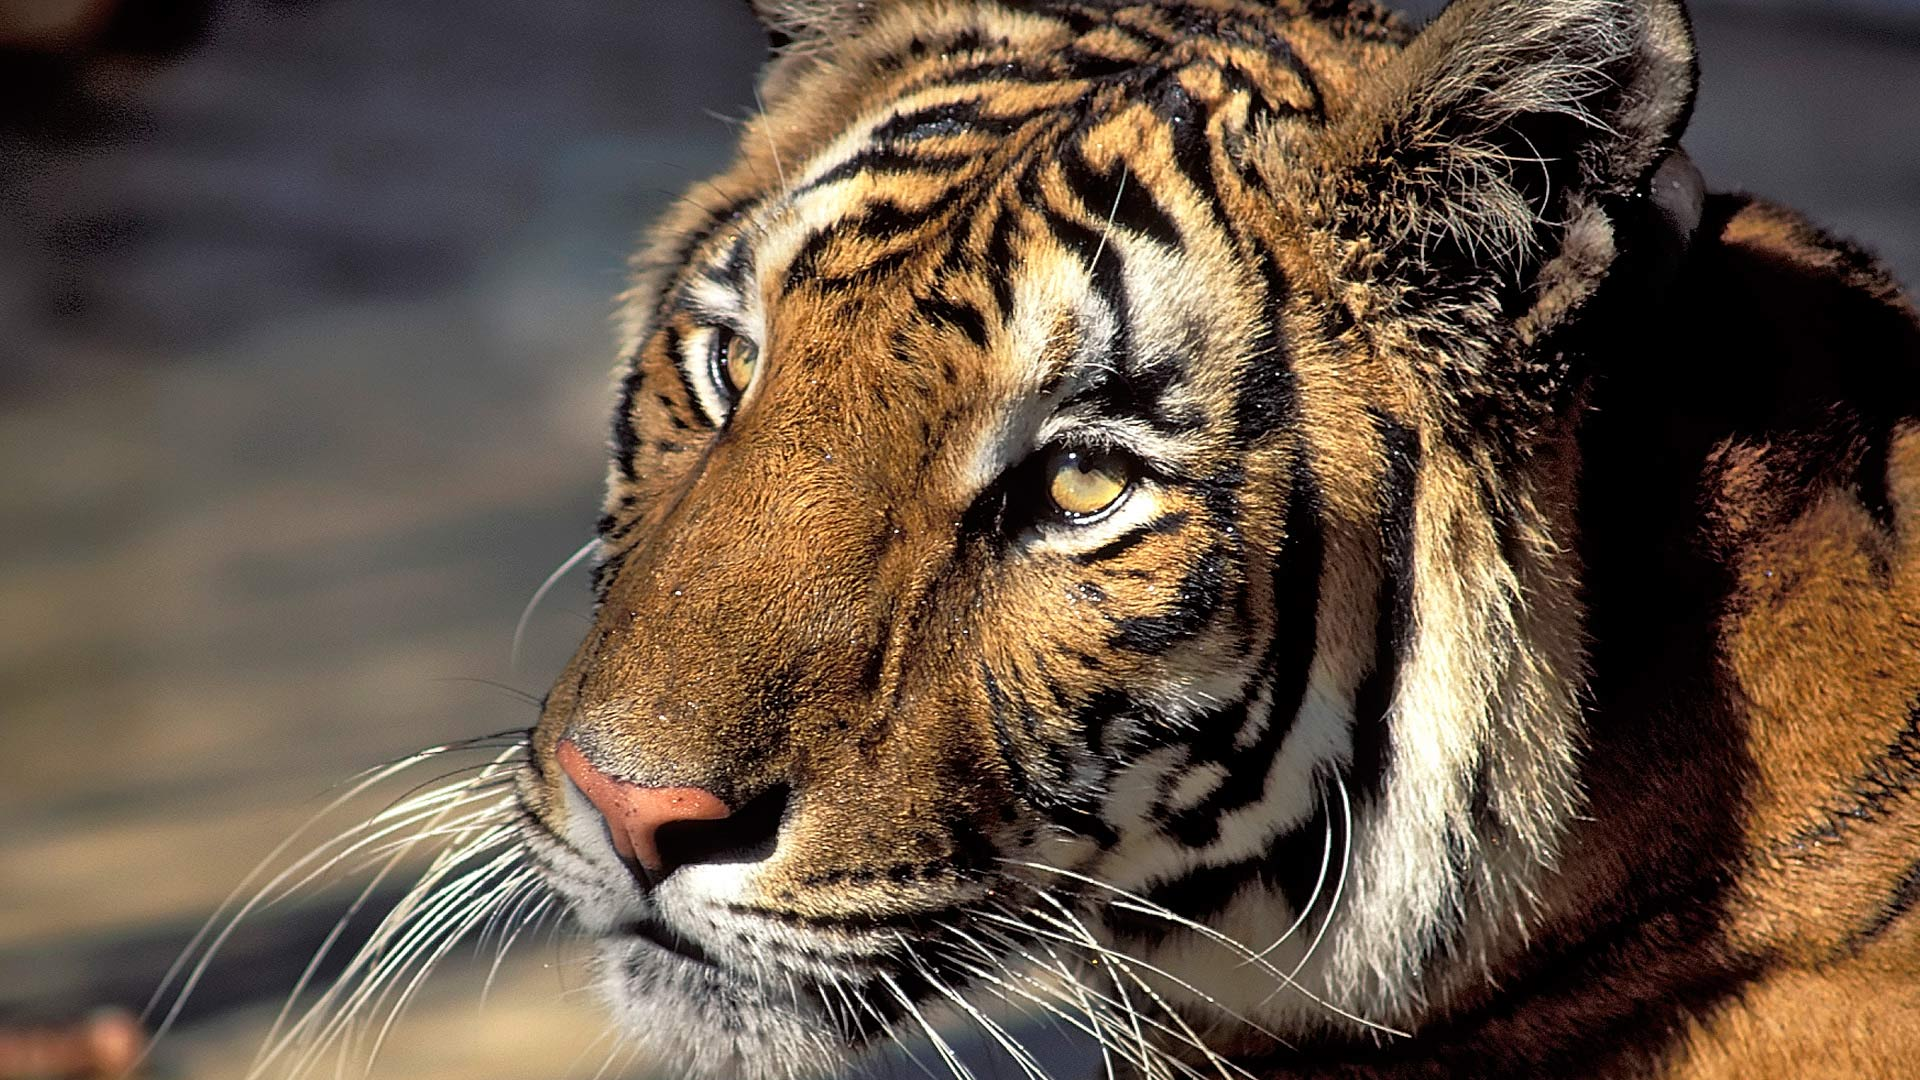 Royal Bengal tiger, India